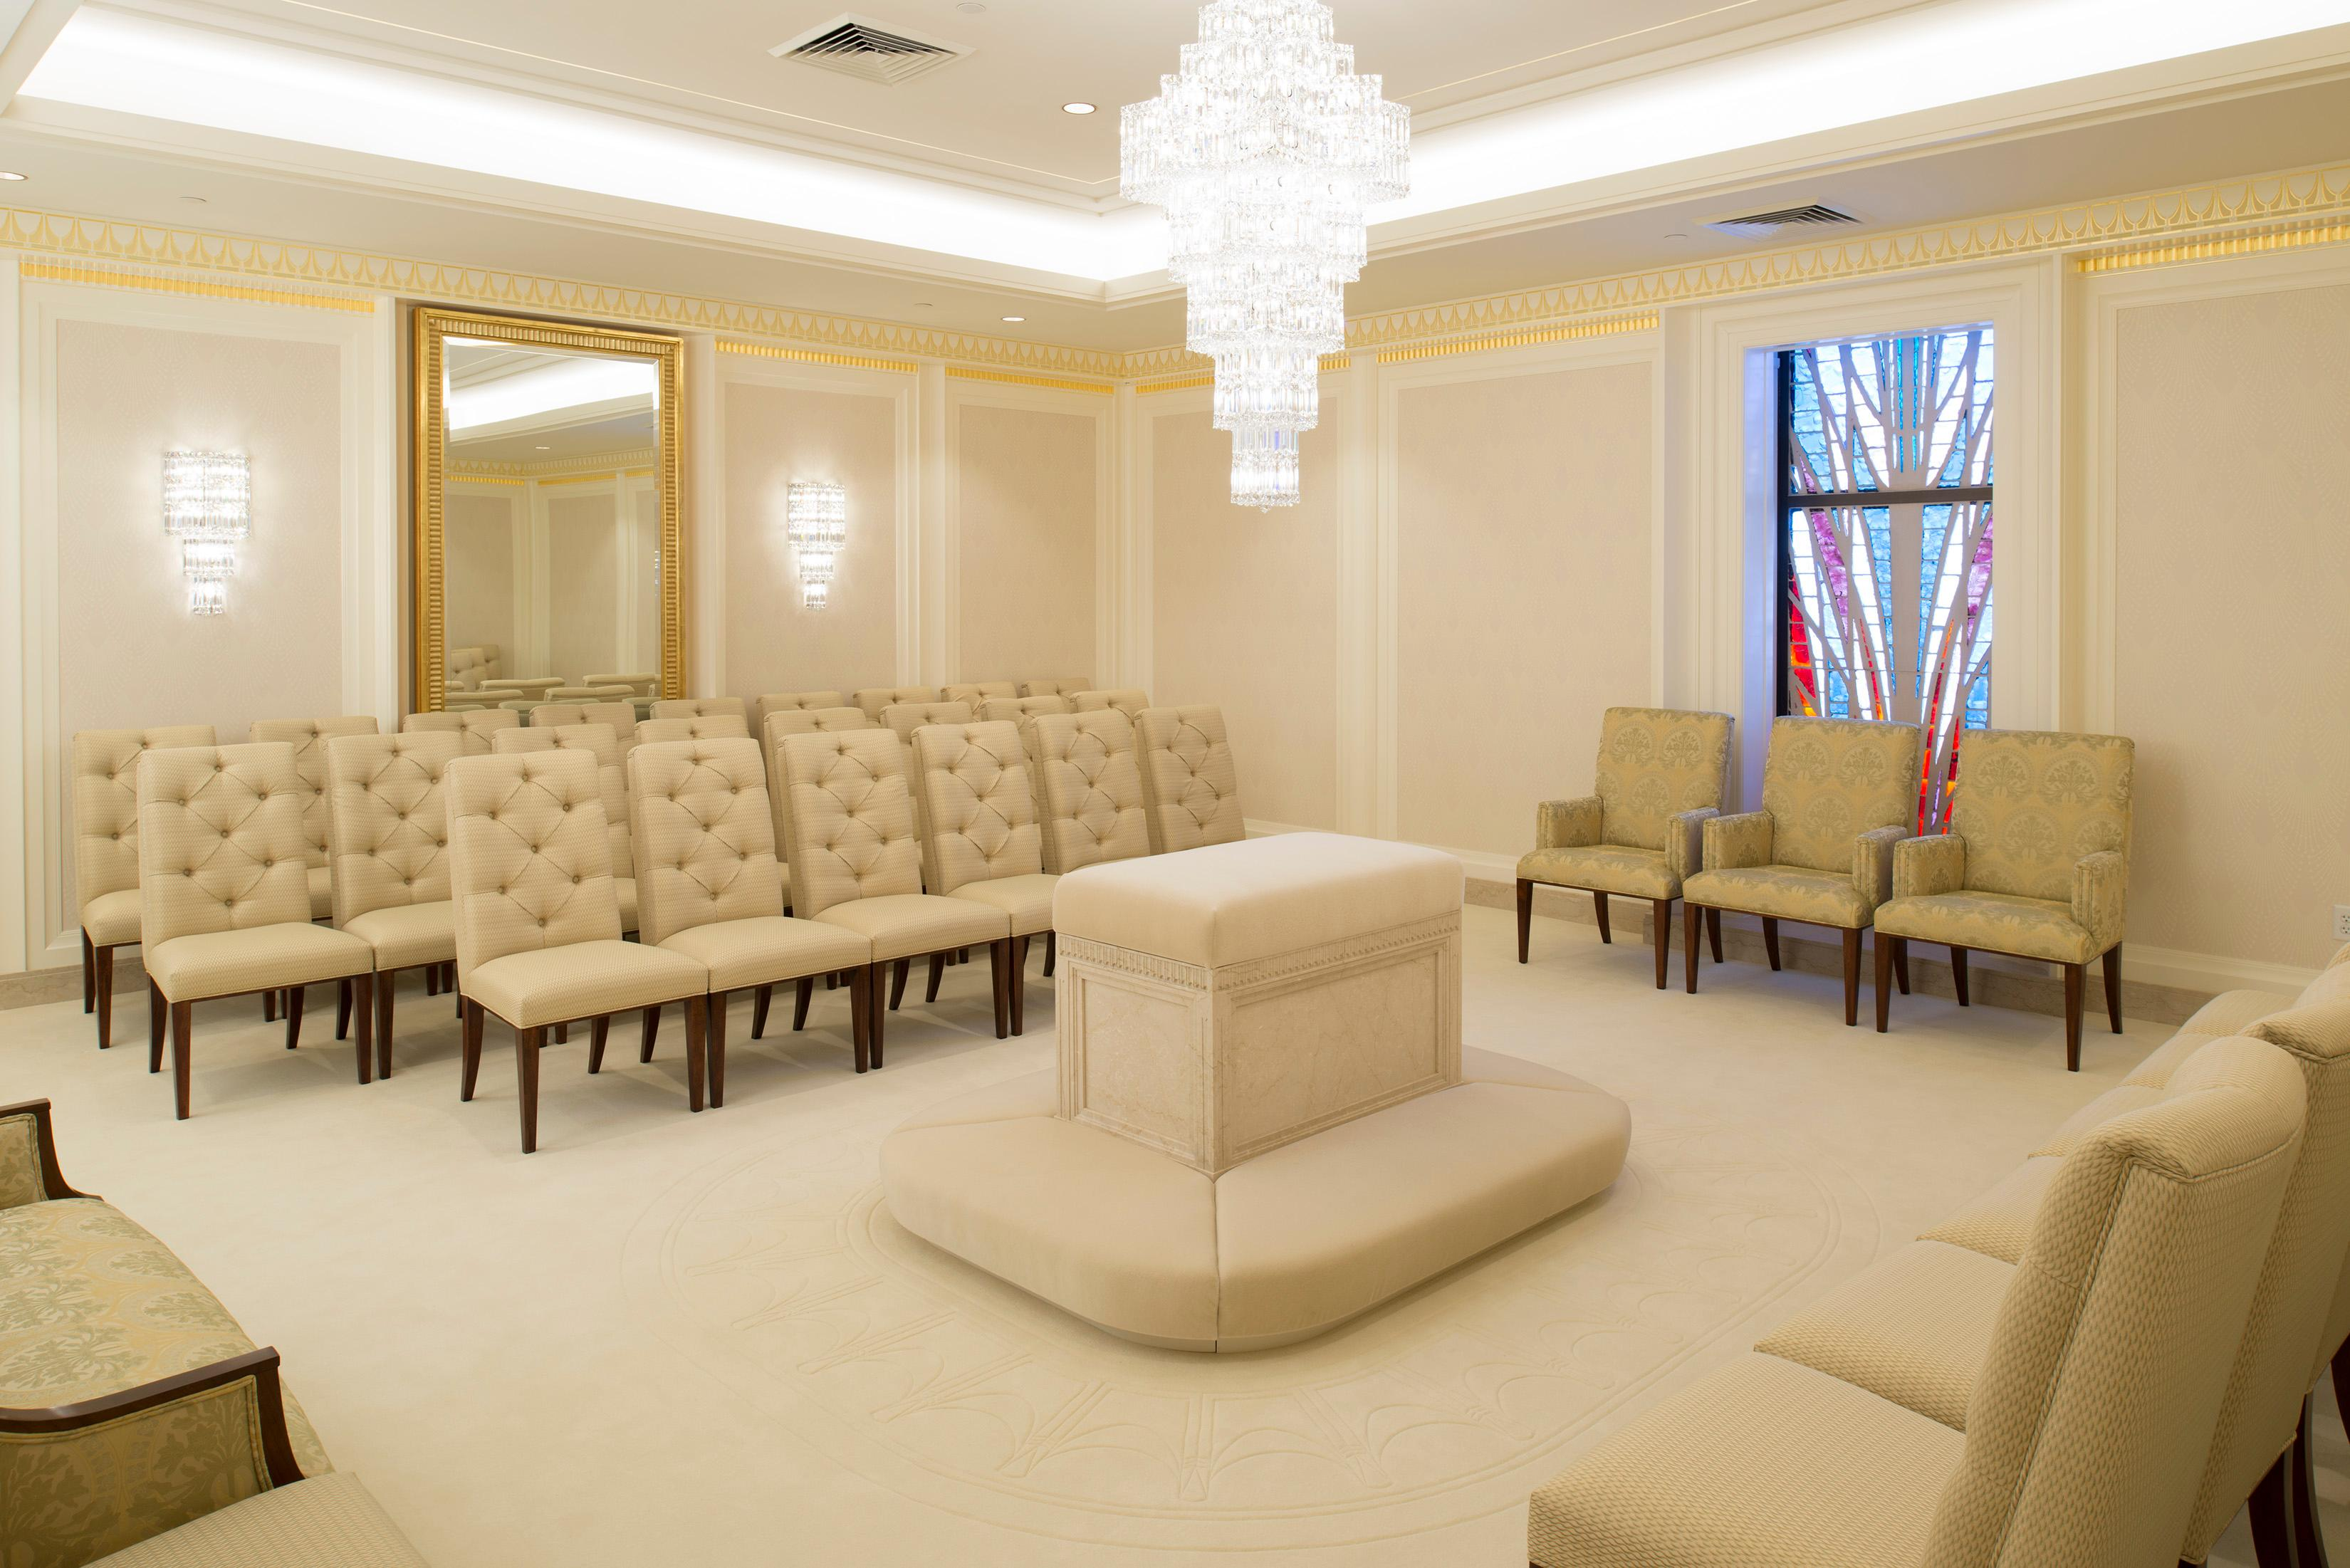 One of the sealing rooms in the Jordan River Utah Temple.{ }©2018 BY INTELLECTUAL RESERVE, INC. ALL RIGHTS RESERVED.